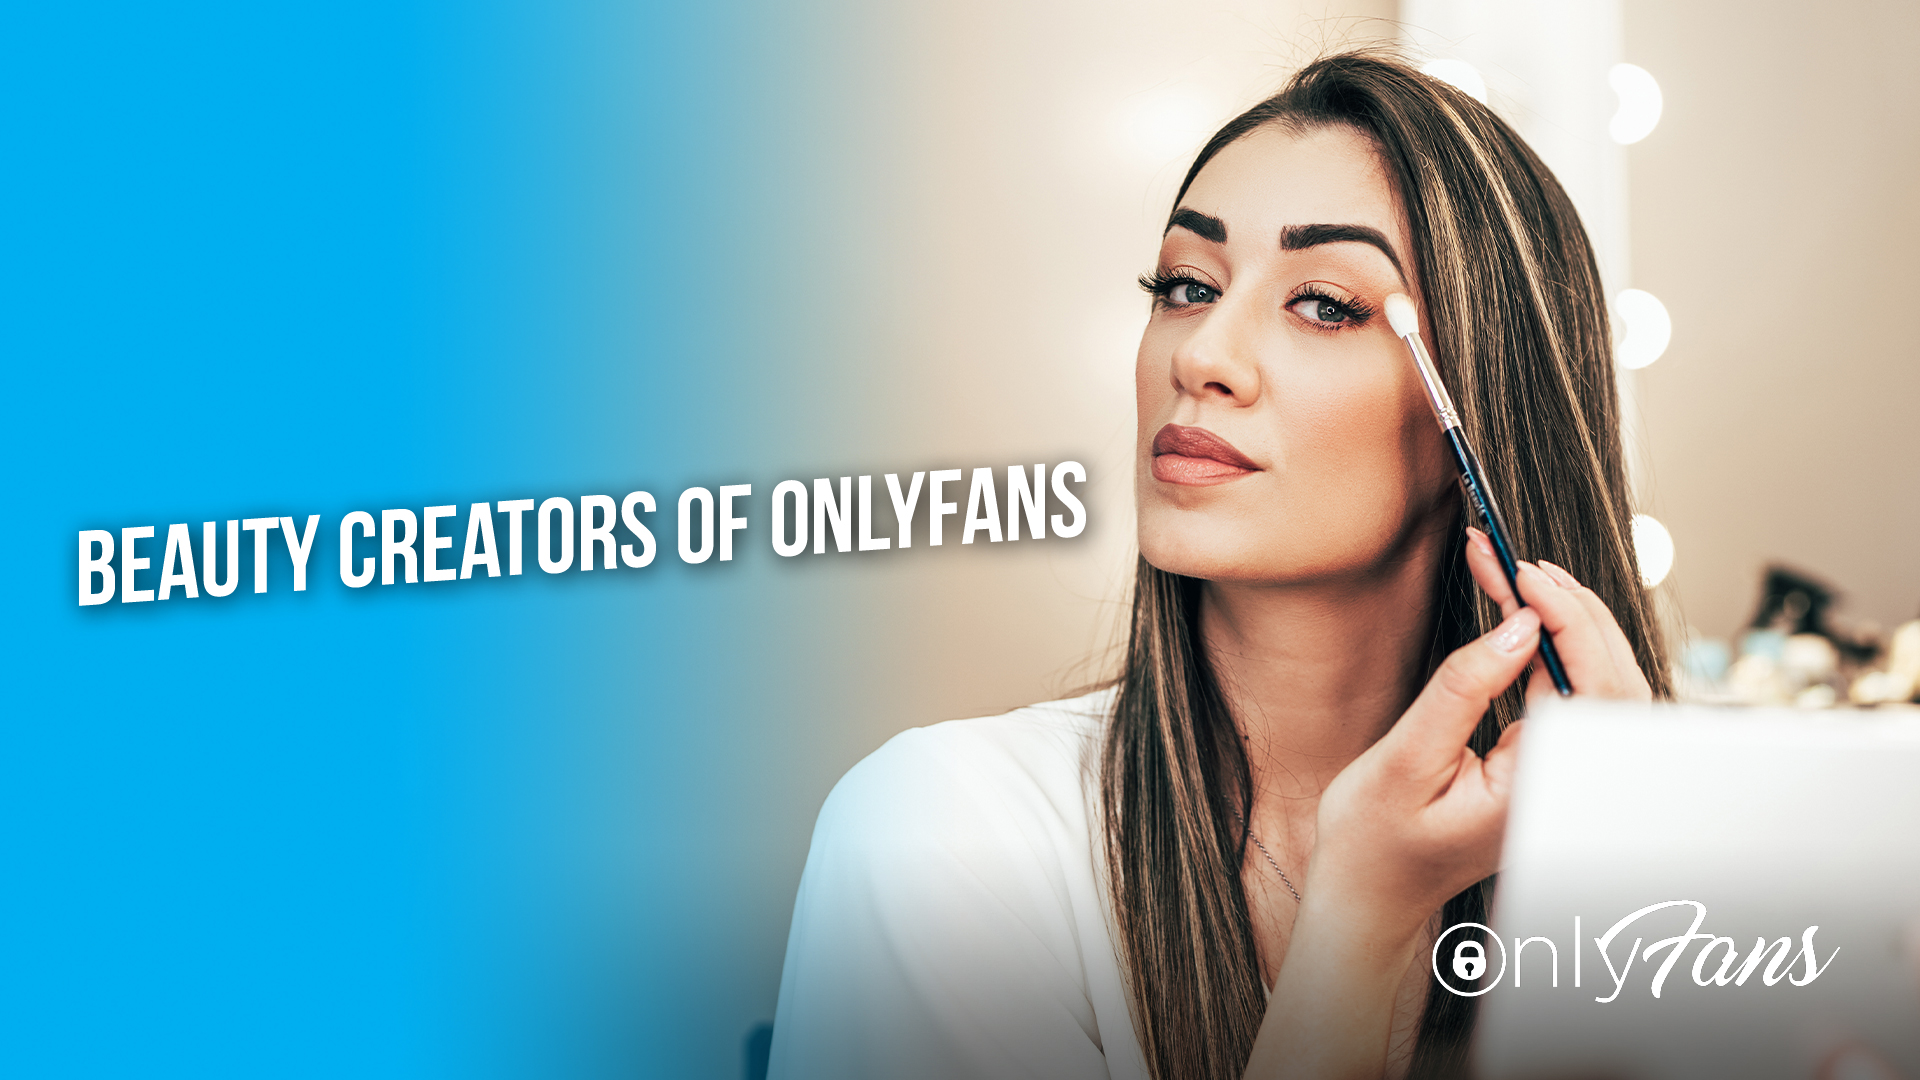 Beauty creators of OnlyFans